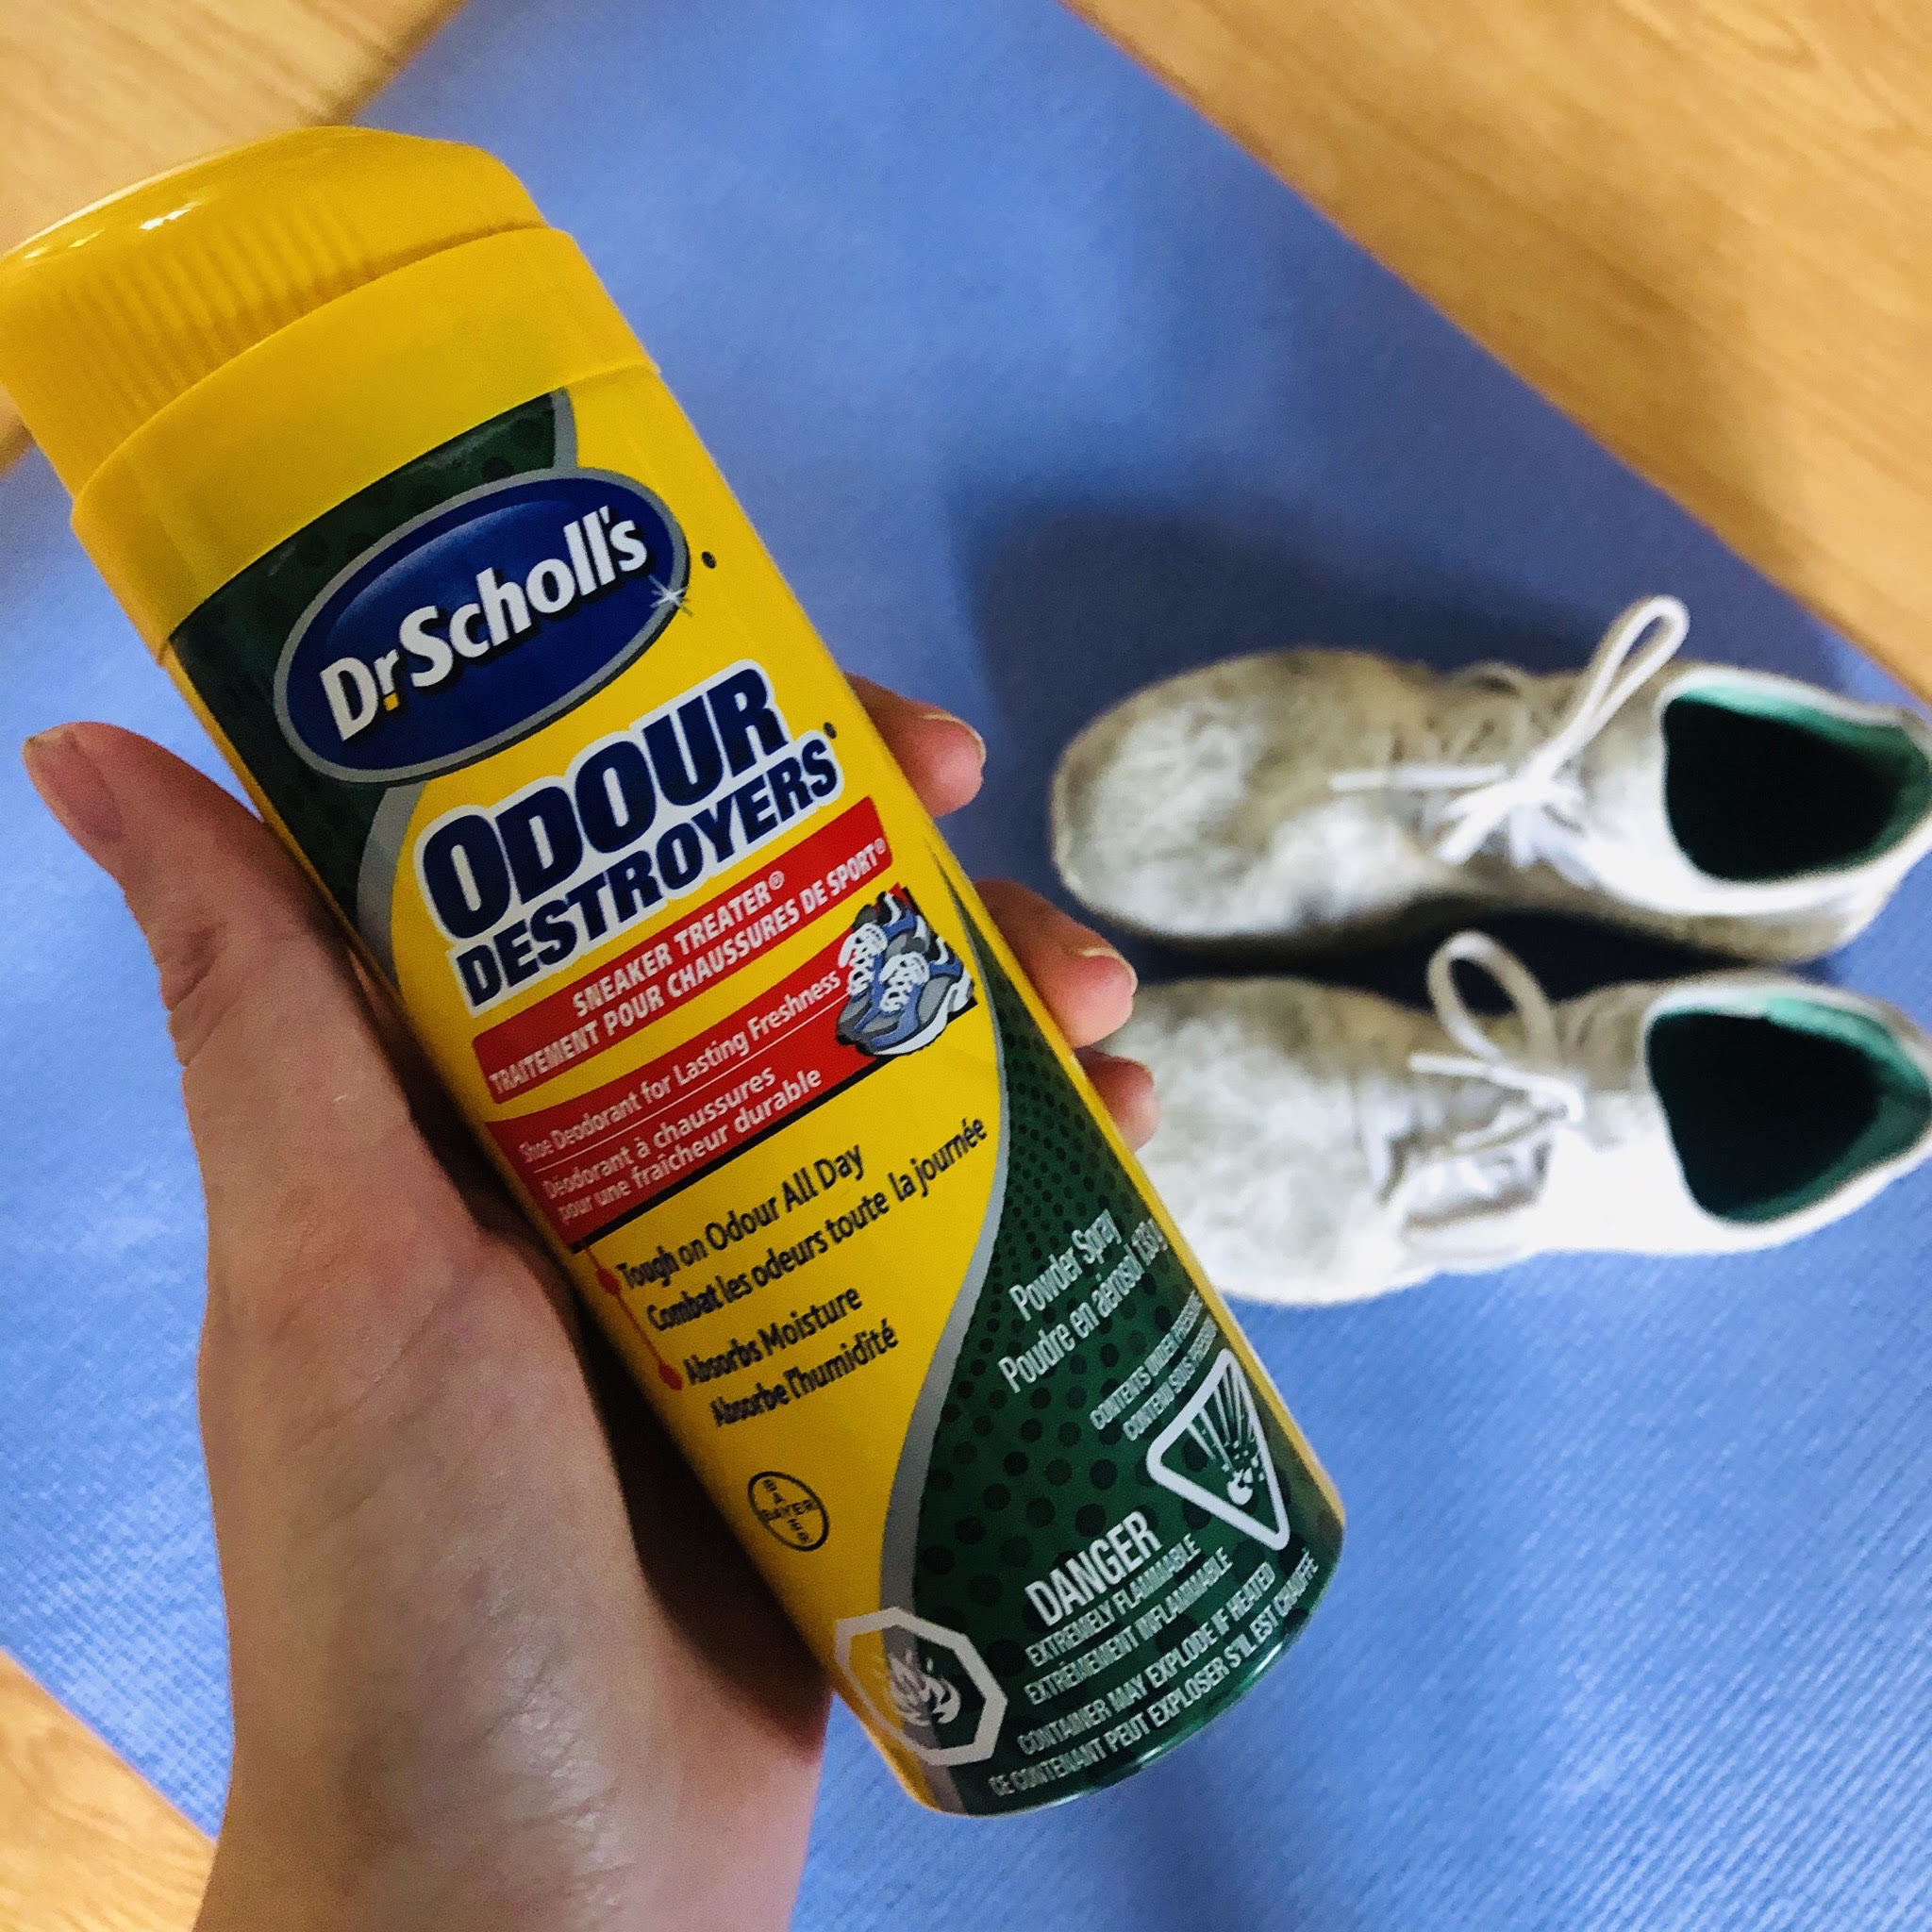 A bottle of the sneaker spray, with a pair of un-stinky sneakers in the background